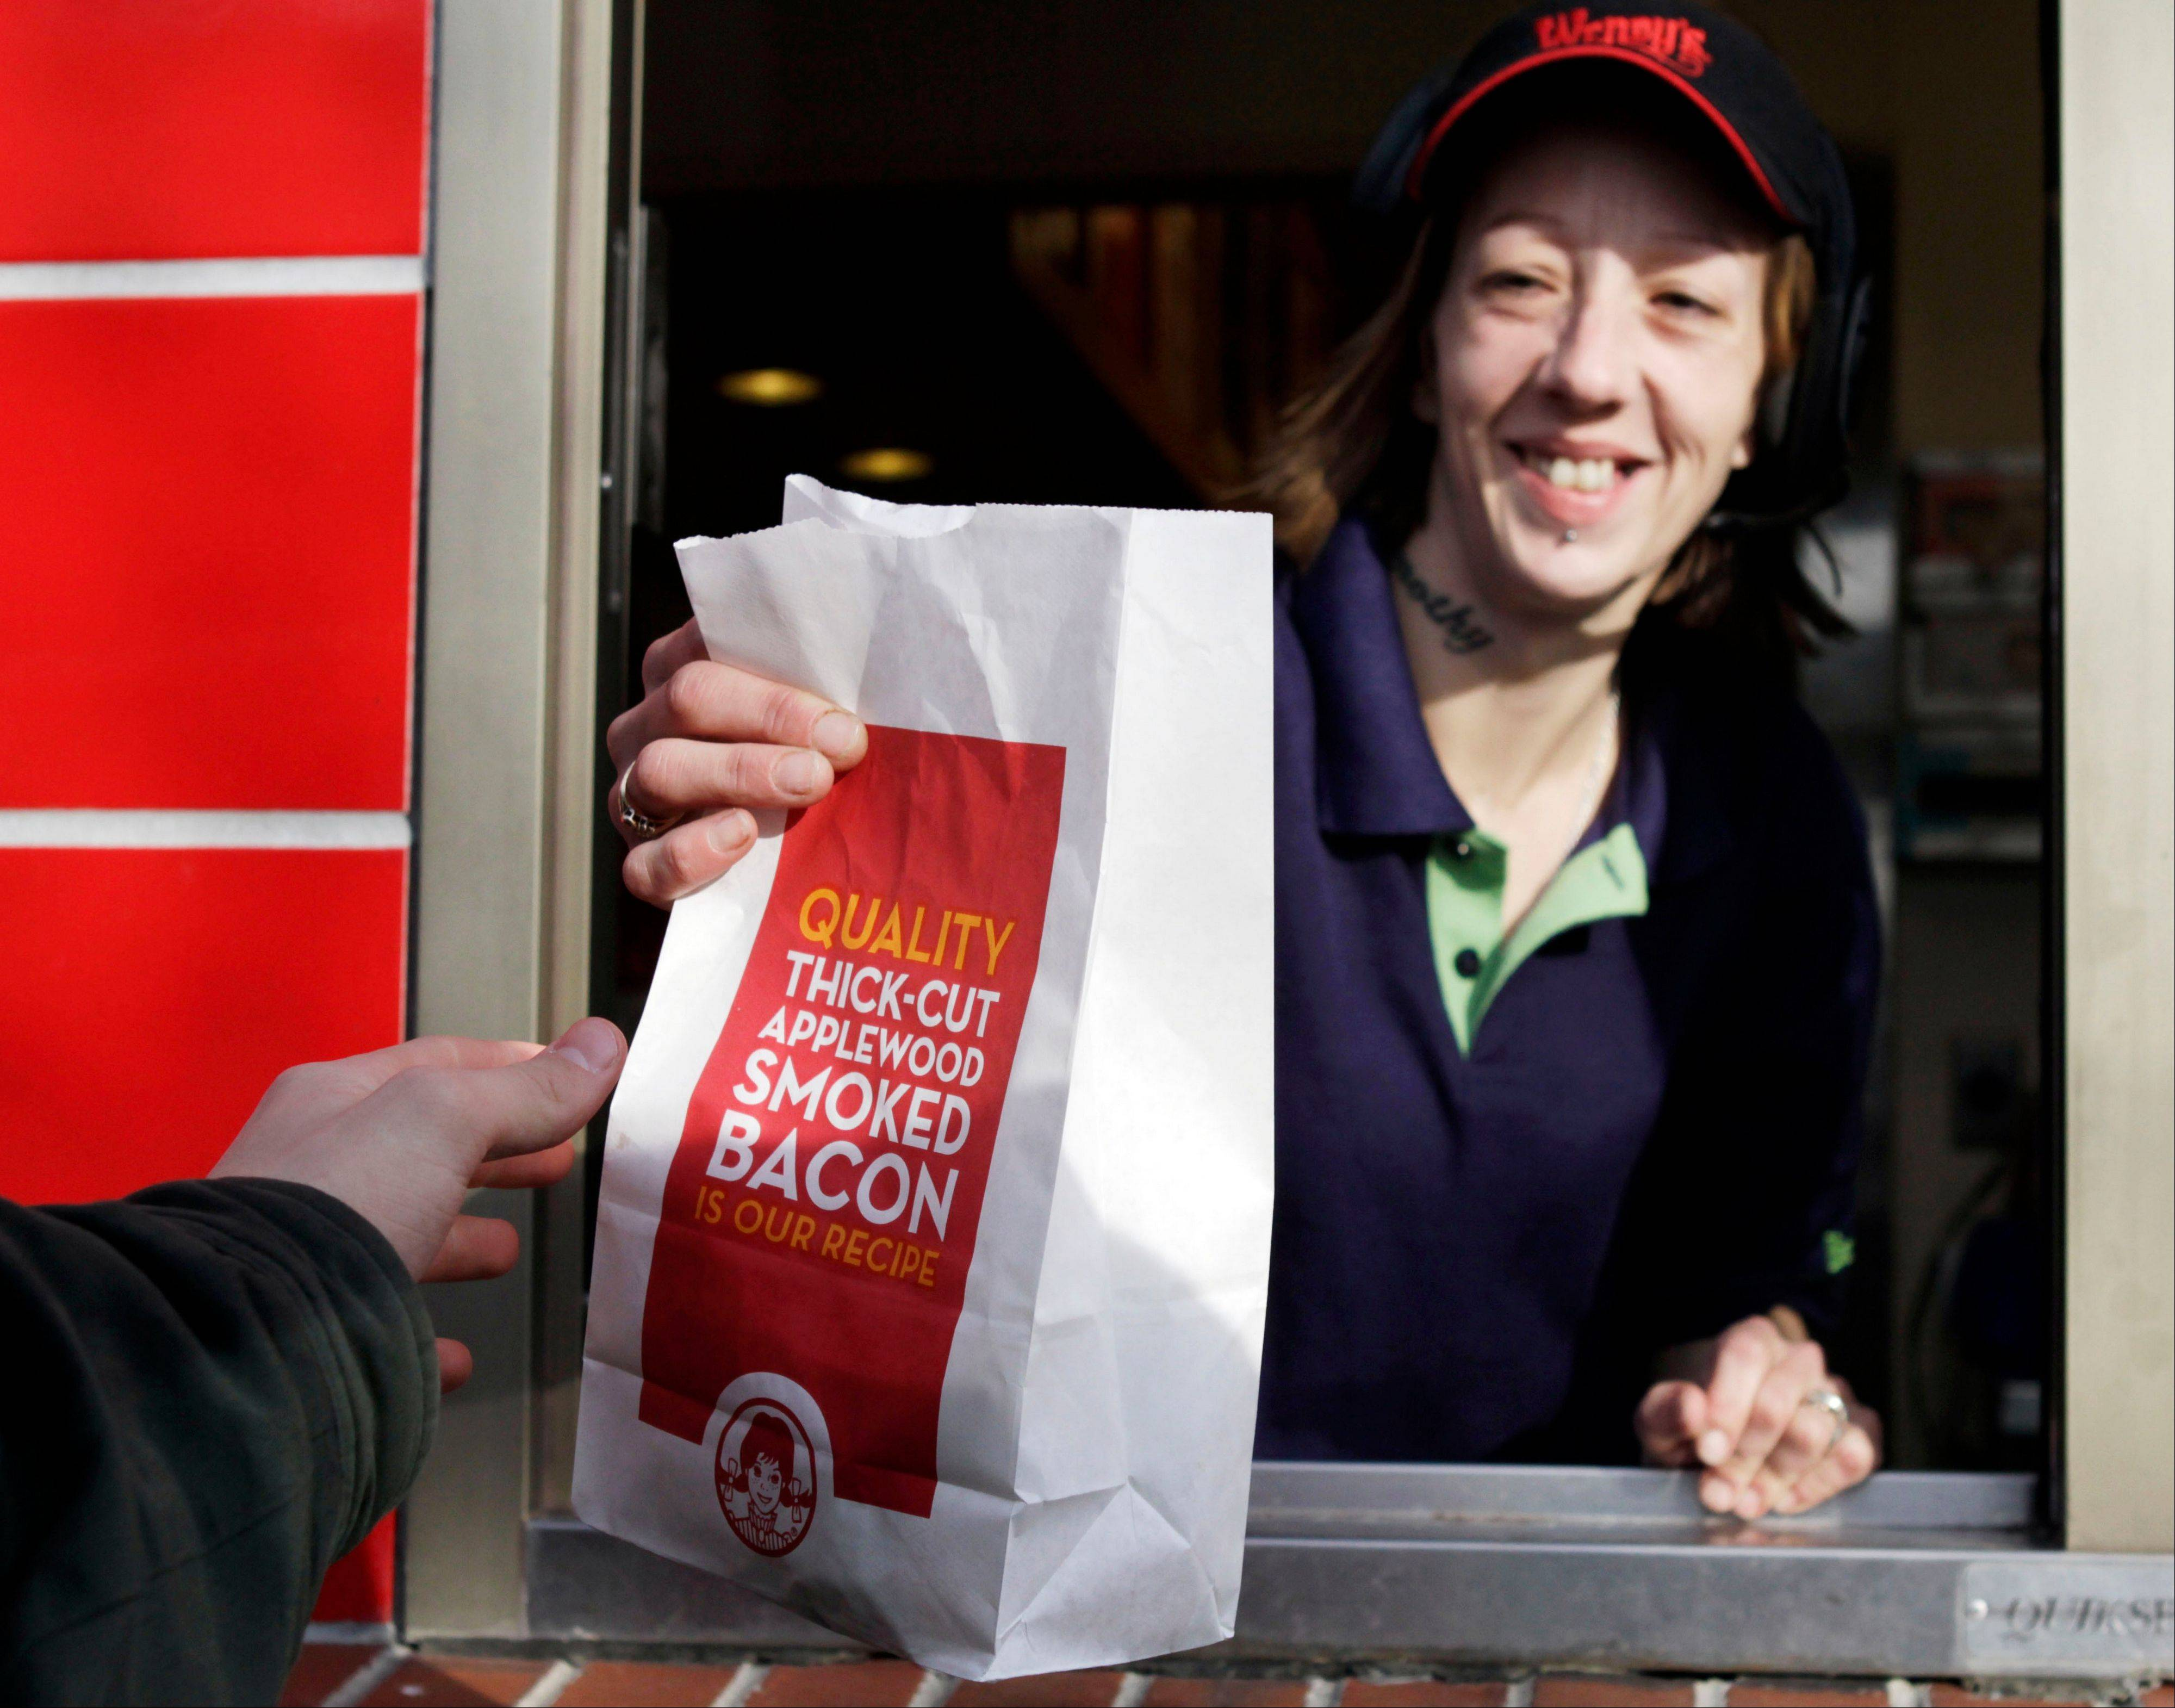 The Wendy's Co. says Thursday, Aug. 9, 2012 that it lost money in the second quarter because of costs to refinance debt. But a key sales figure rose as it worked to reinvent itself as a higher-end hamburger chain. The Dublin, Ohio-based fast-food company says sales at restaurants open at least 15 months rose 3.2 percent for the quarter.